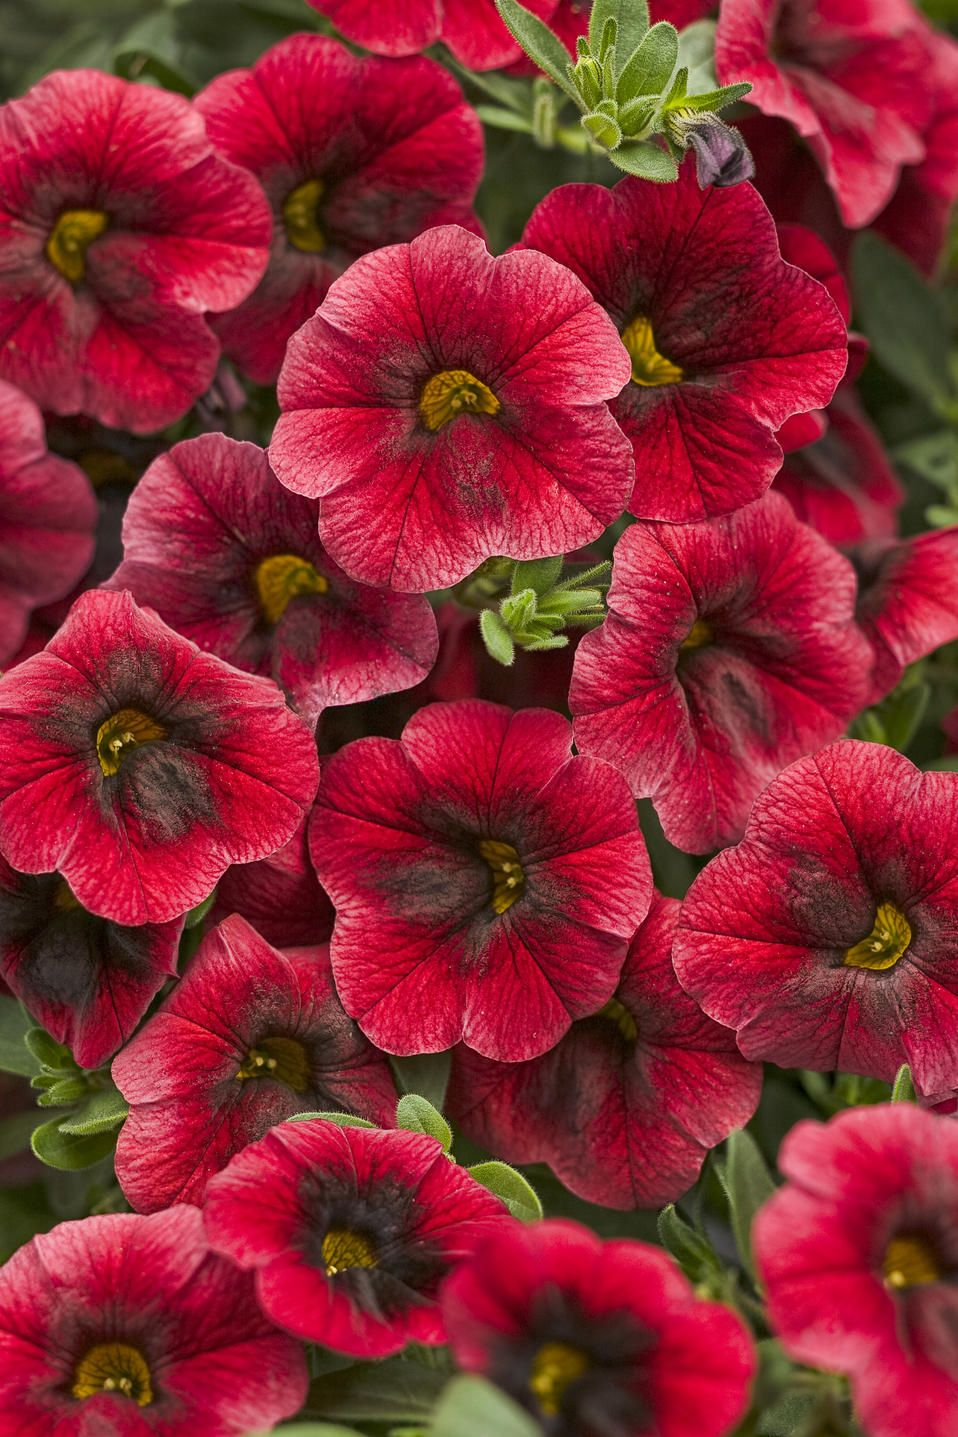 Gorgeous new variety for 2013 that have brilliant red petals and a dark black throat. Stellar plant with tons of possible container pairings. Calibrachoa prefer full sun and good drainage - best in containers, windowboxes, baskets where water saturation can be controlled. This 2013 variety is called Superbells® Pomegranate Punch.